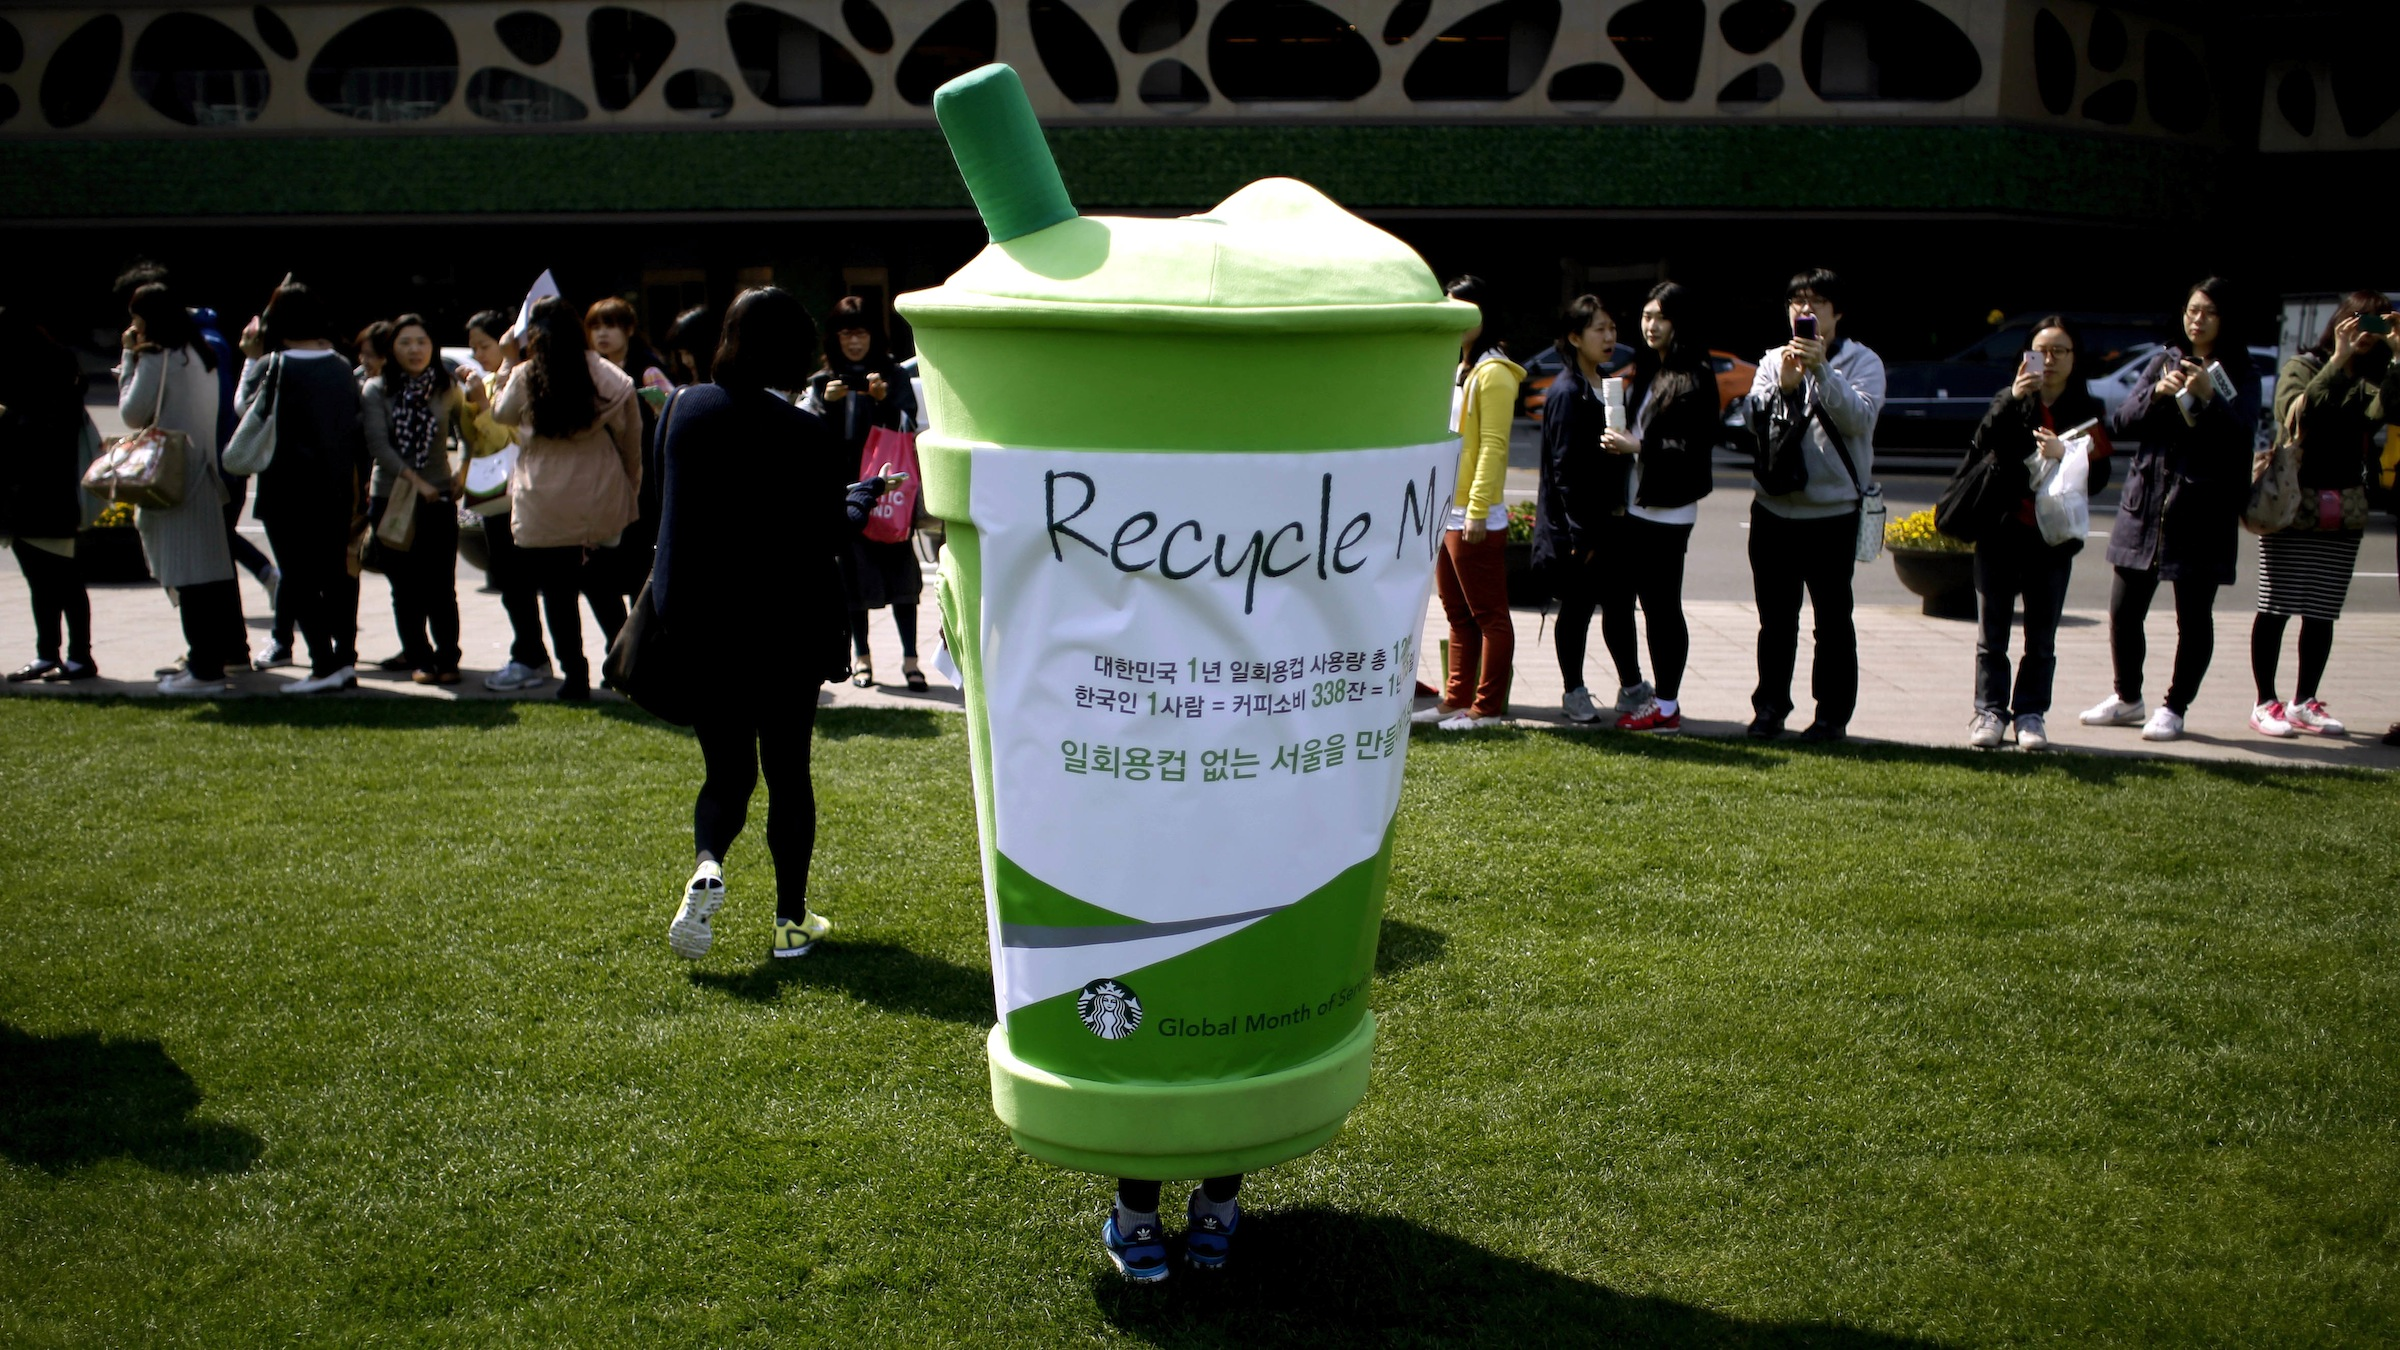 A volunteer wearing a doll of disposable cup, stands during an environment campaign as part of Earth Day celebrations in front of Seoul City Hall in Seoul, South Korea, Monday, April 22, 2013. (AP Photo/Lee Jin-man)